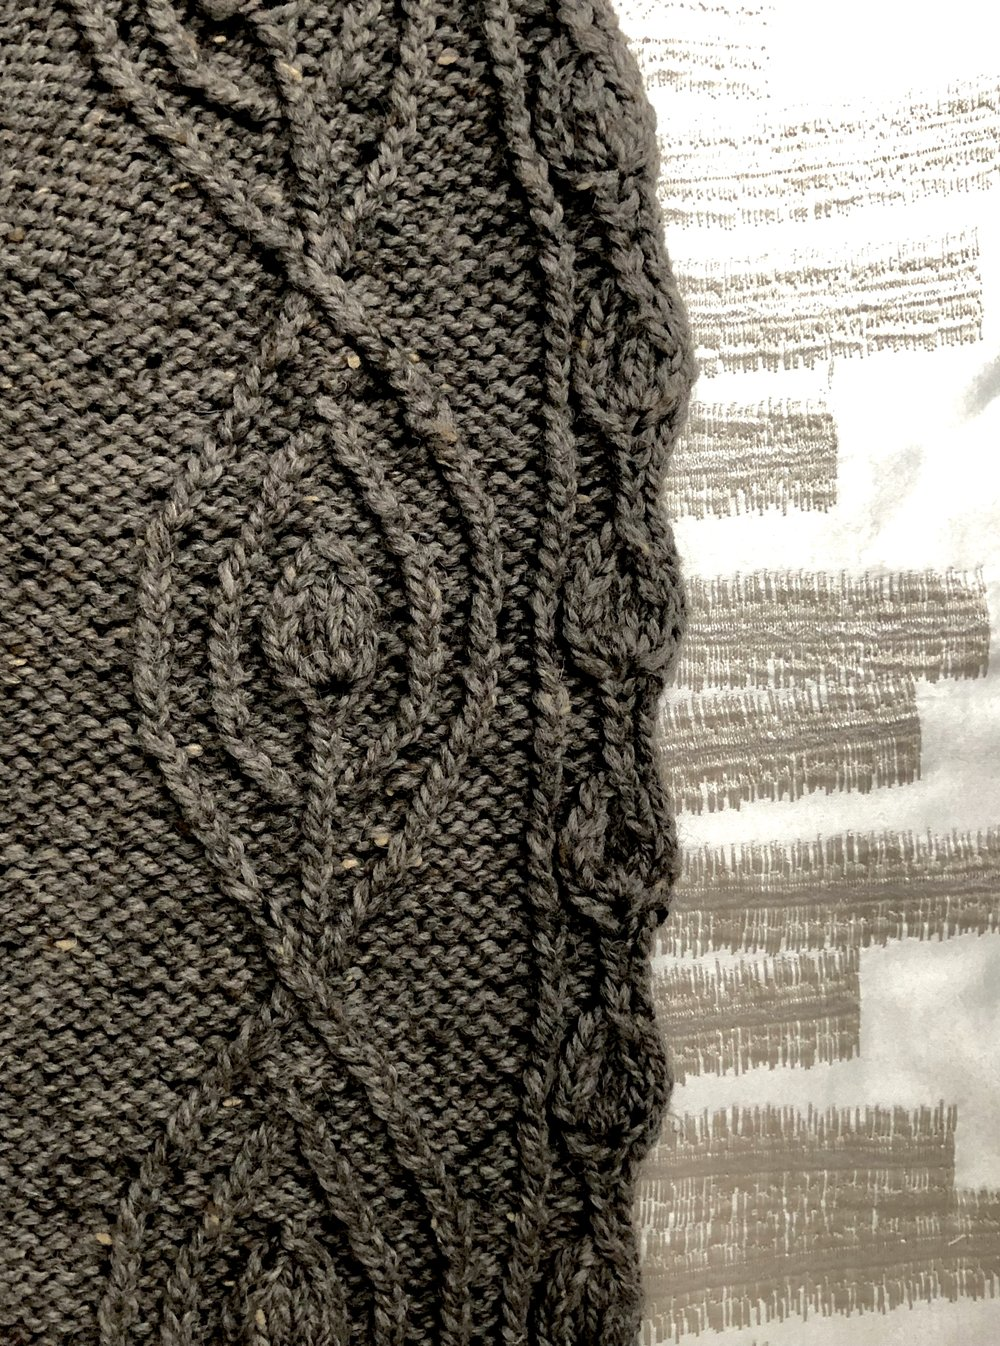 Twisted stitches found in the Saltimbanco Shawl